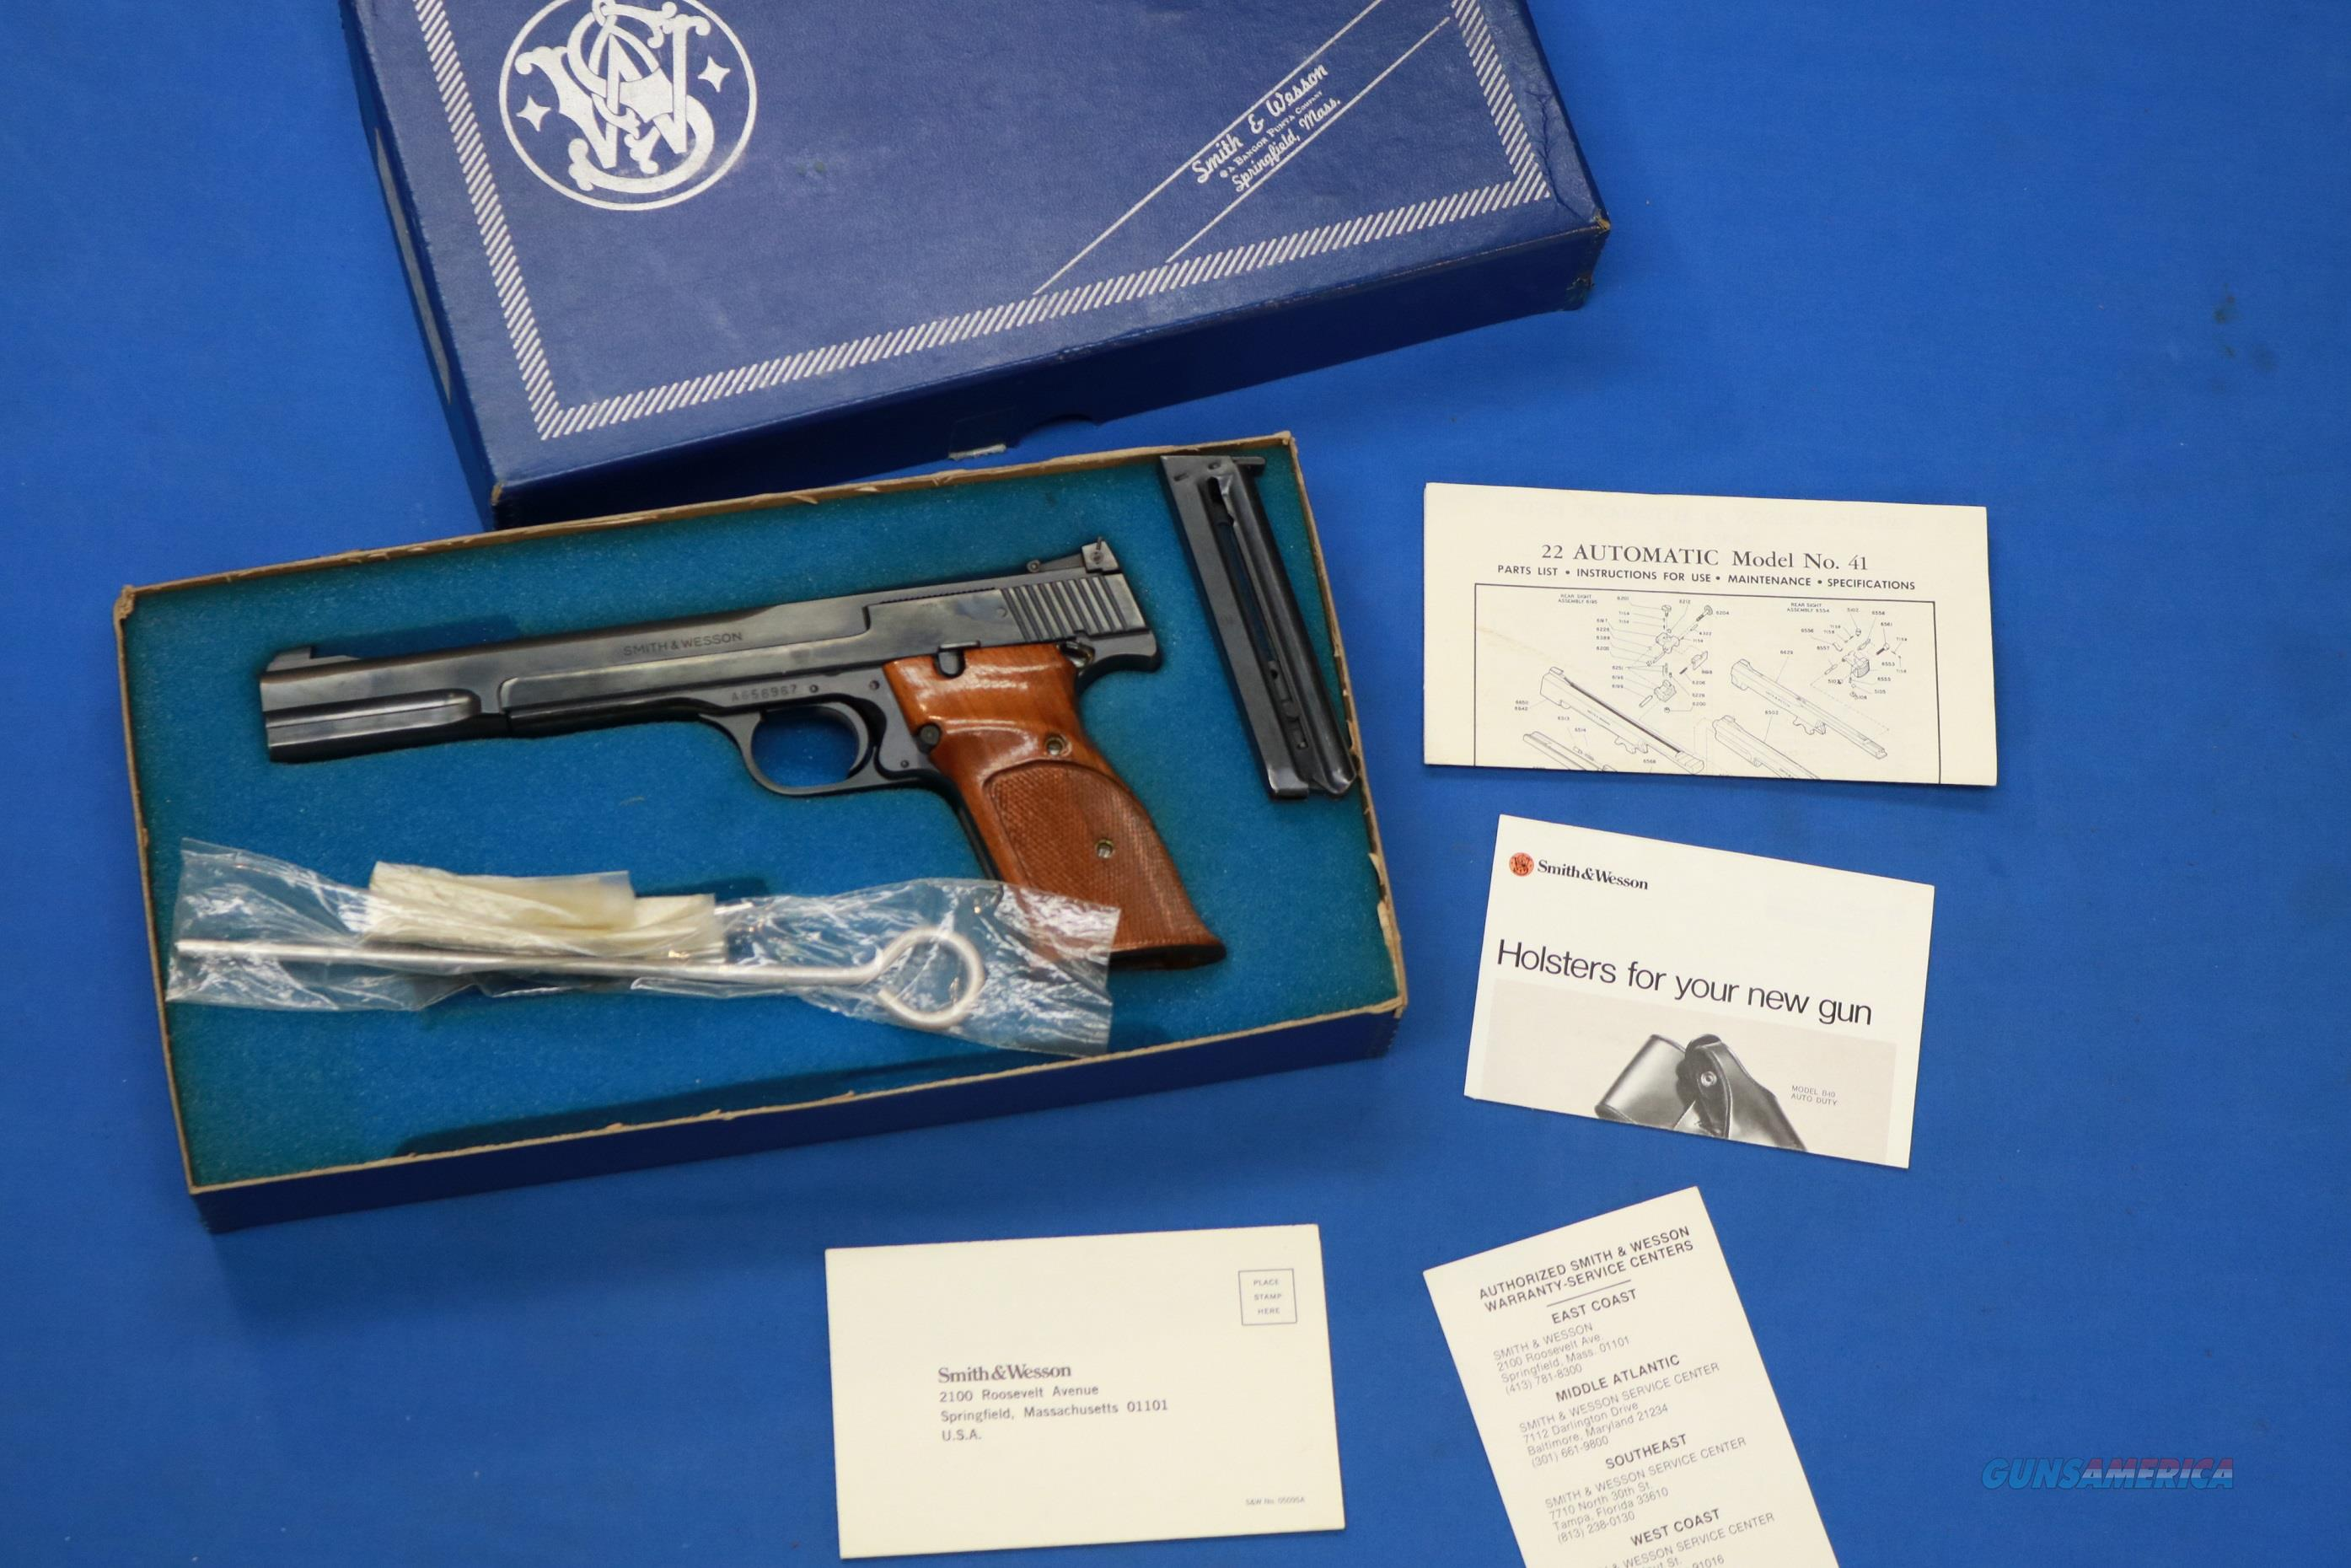 Elk Castle Shooting Sports Items Smith And Wesson Model 29 Parts Diagram On Mosin Nagant 41 Semi Auto 22 Lr 7 W Box Acc